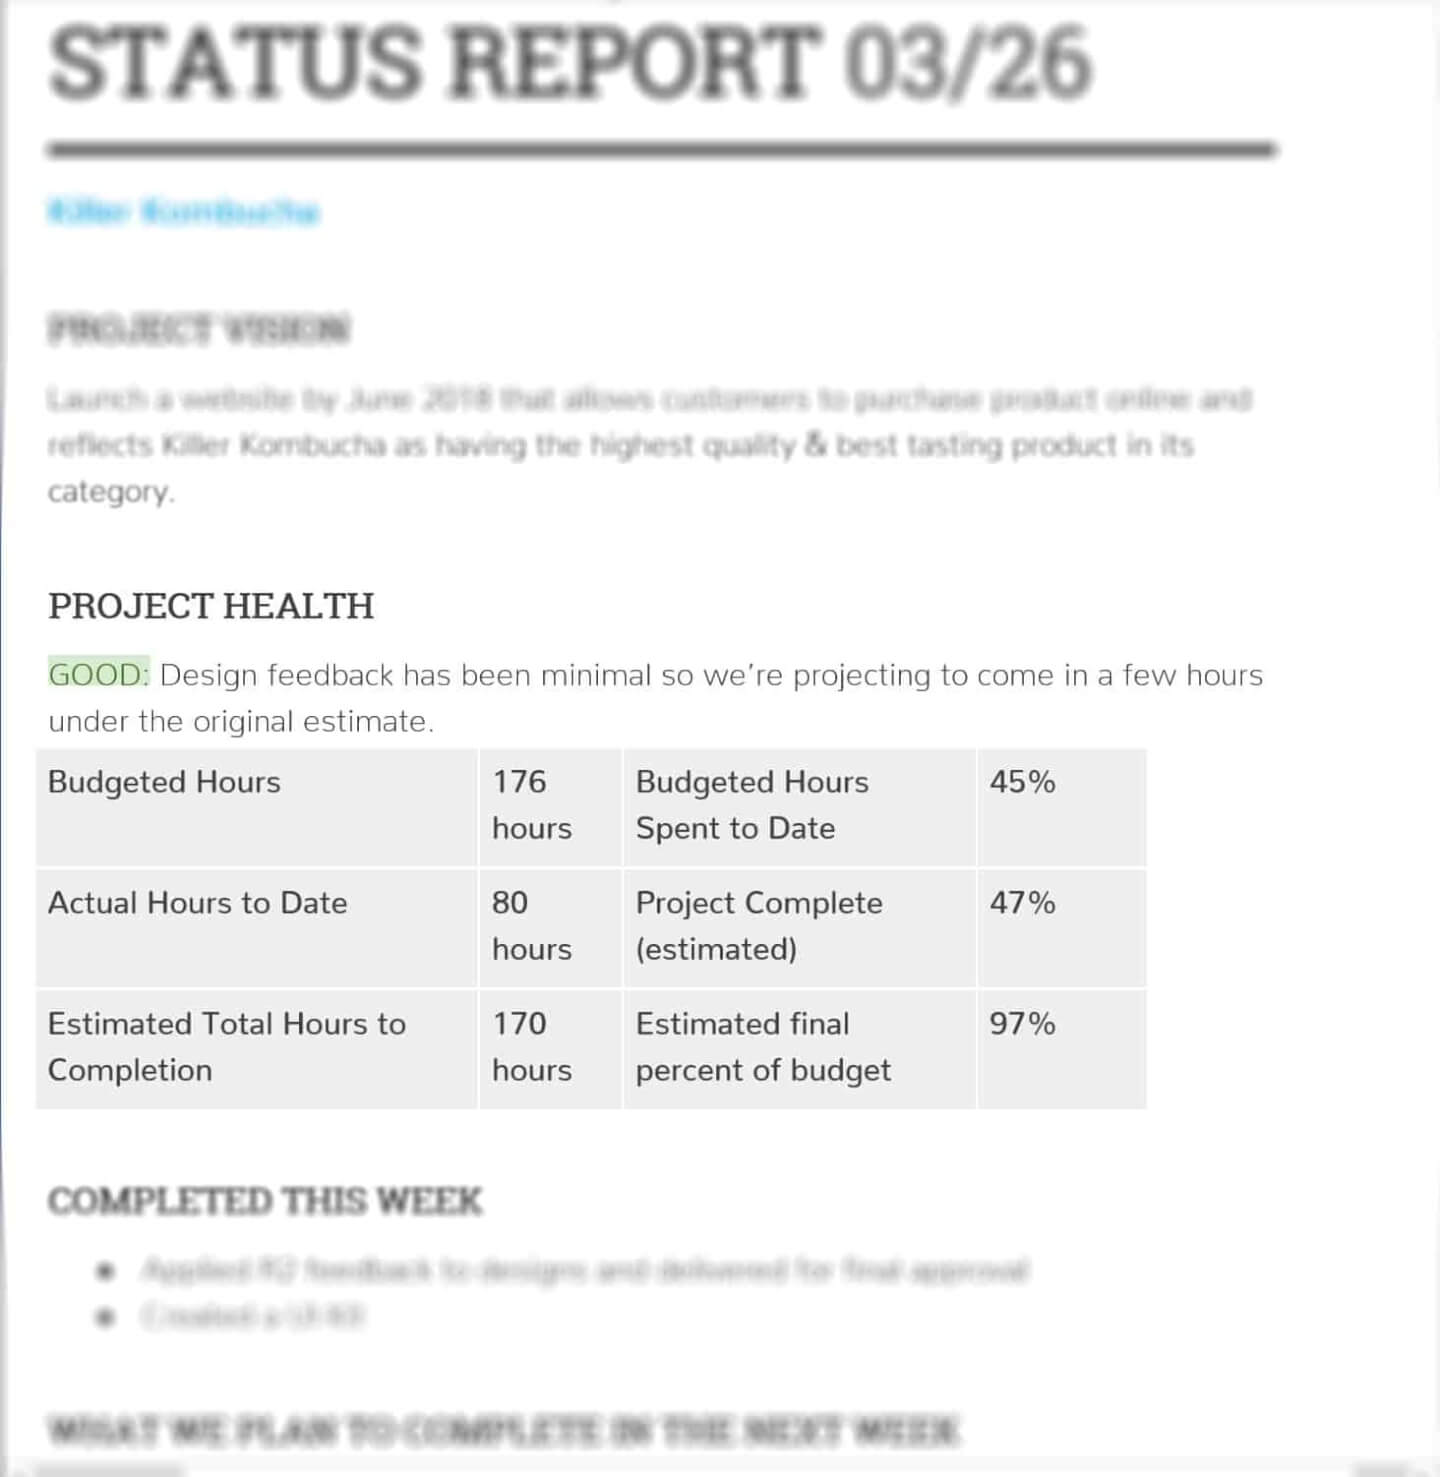 Weekly Project Status Report Example - Project Health